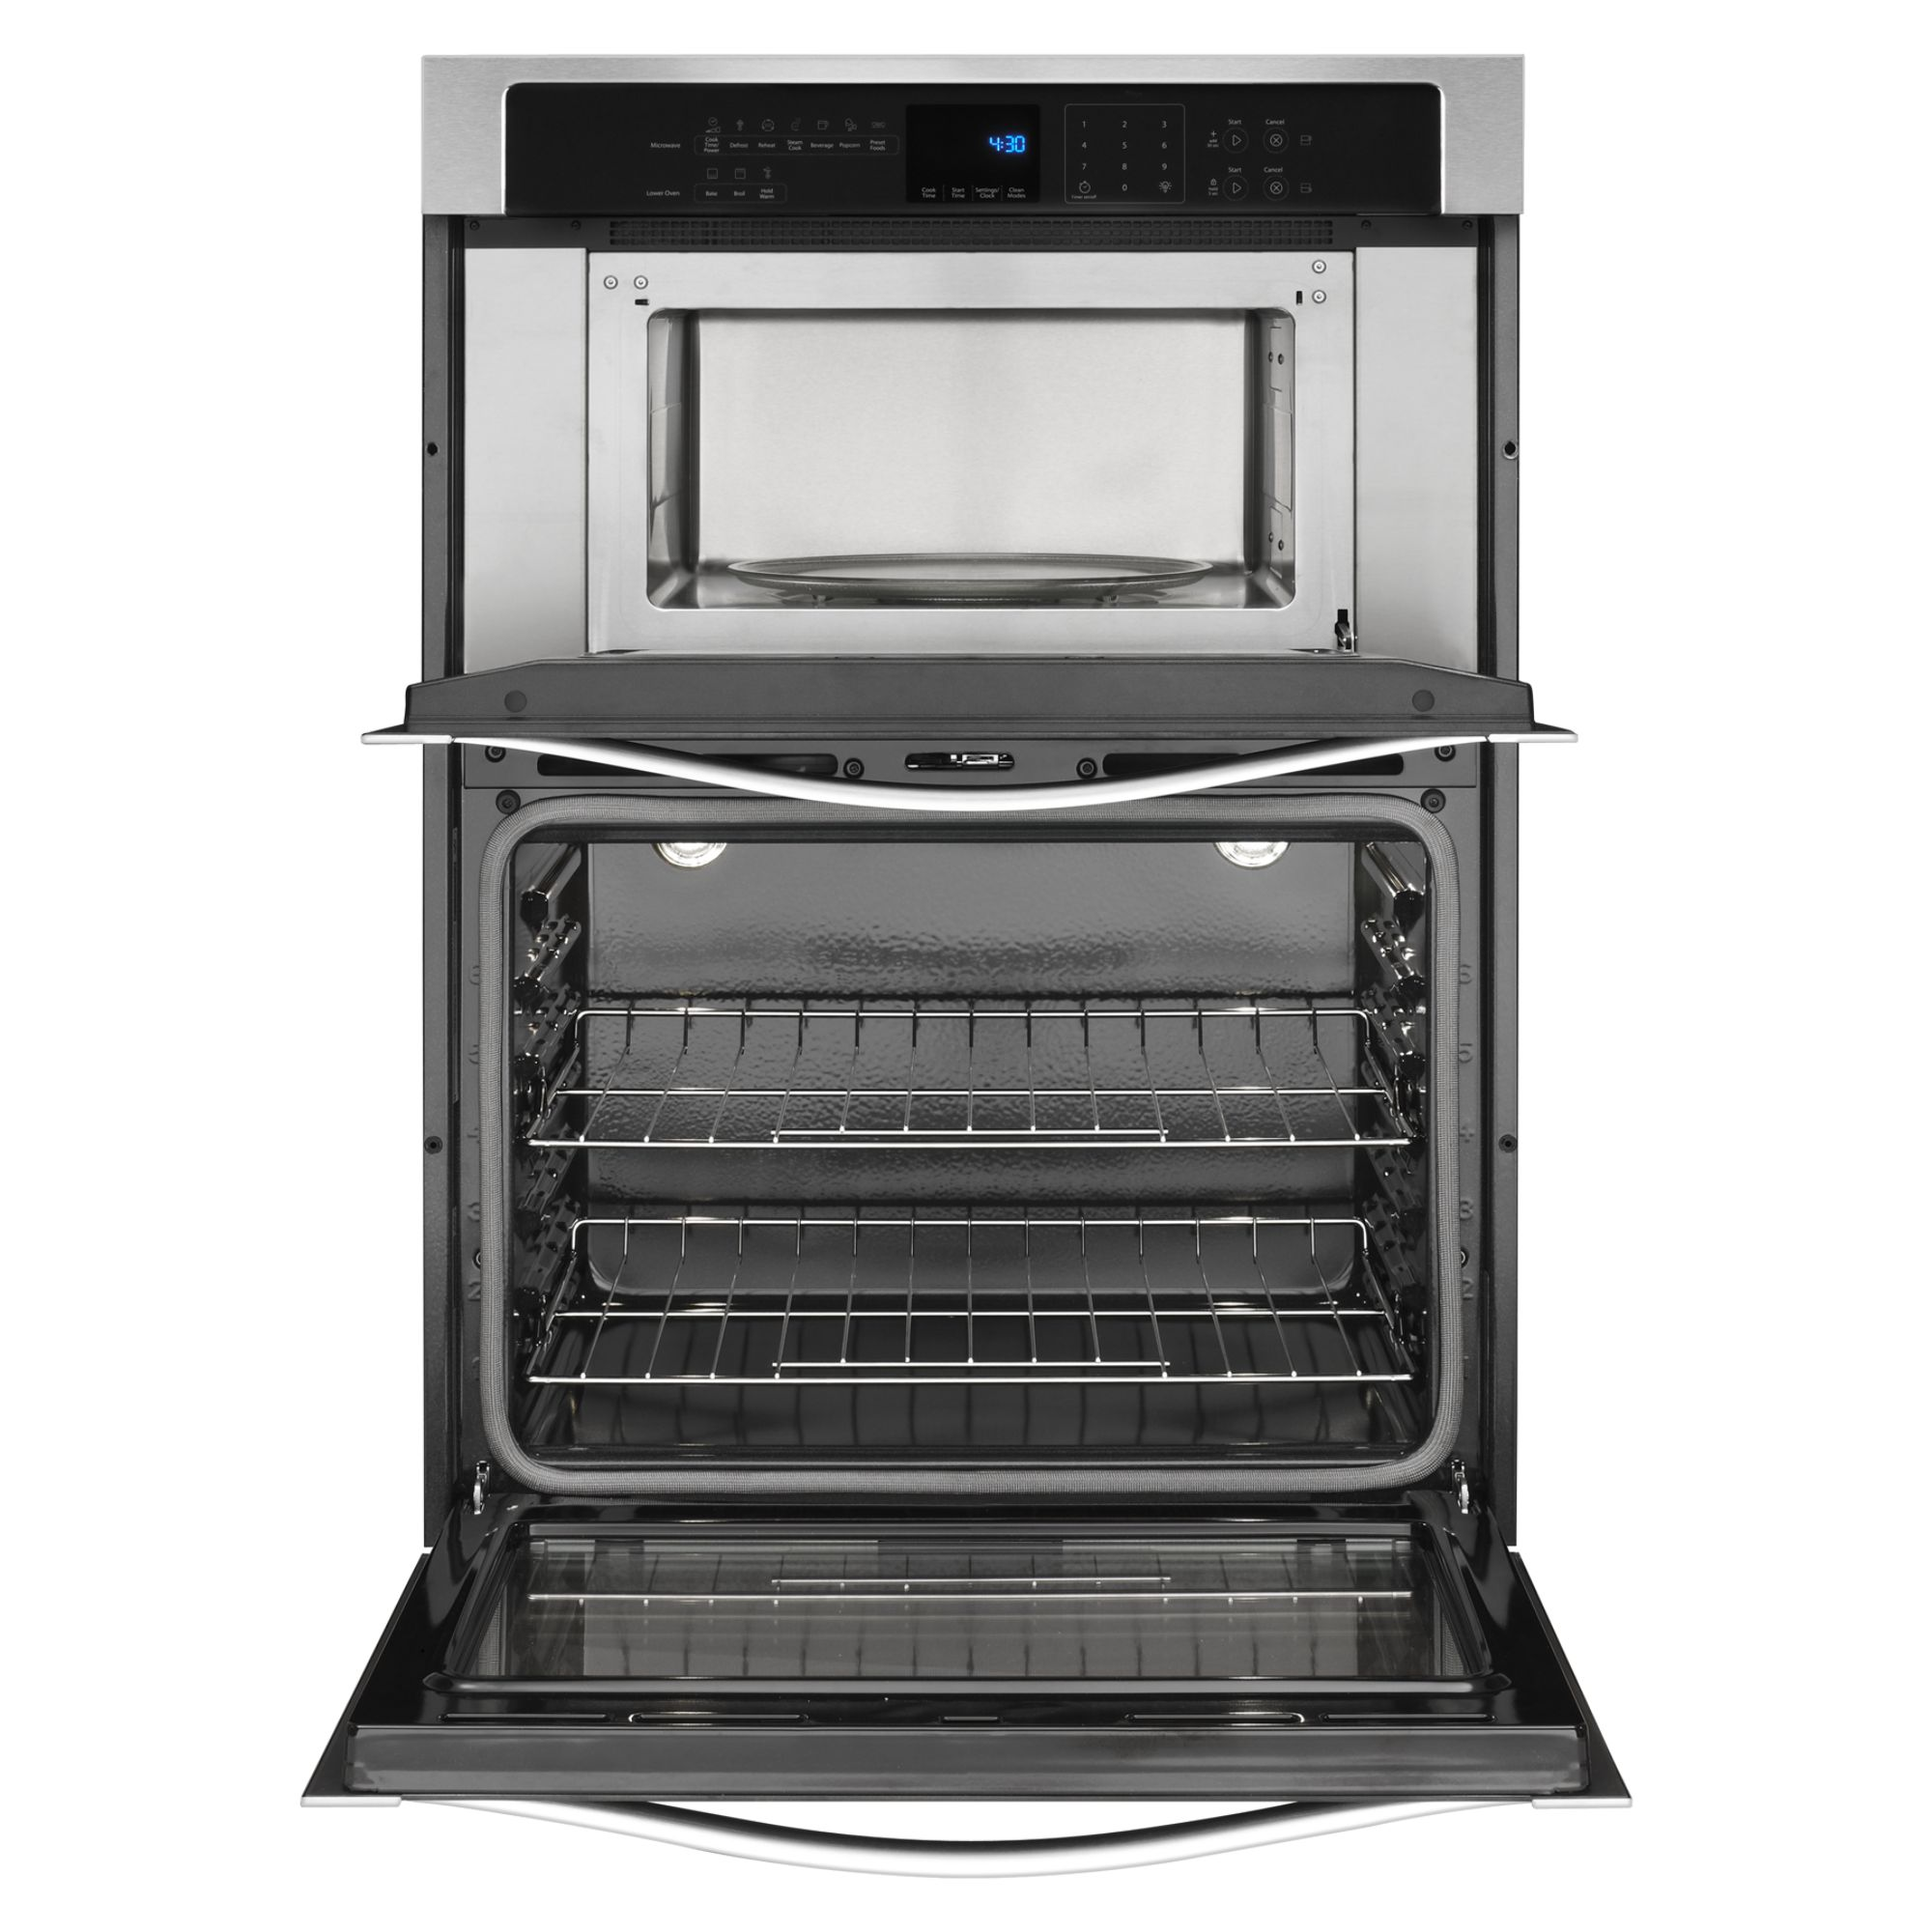 "Whirlpool WOC54EC0AS 30"" Electric Combination Stainless Steel Wall Oven and Microwave"